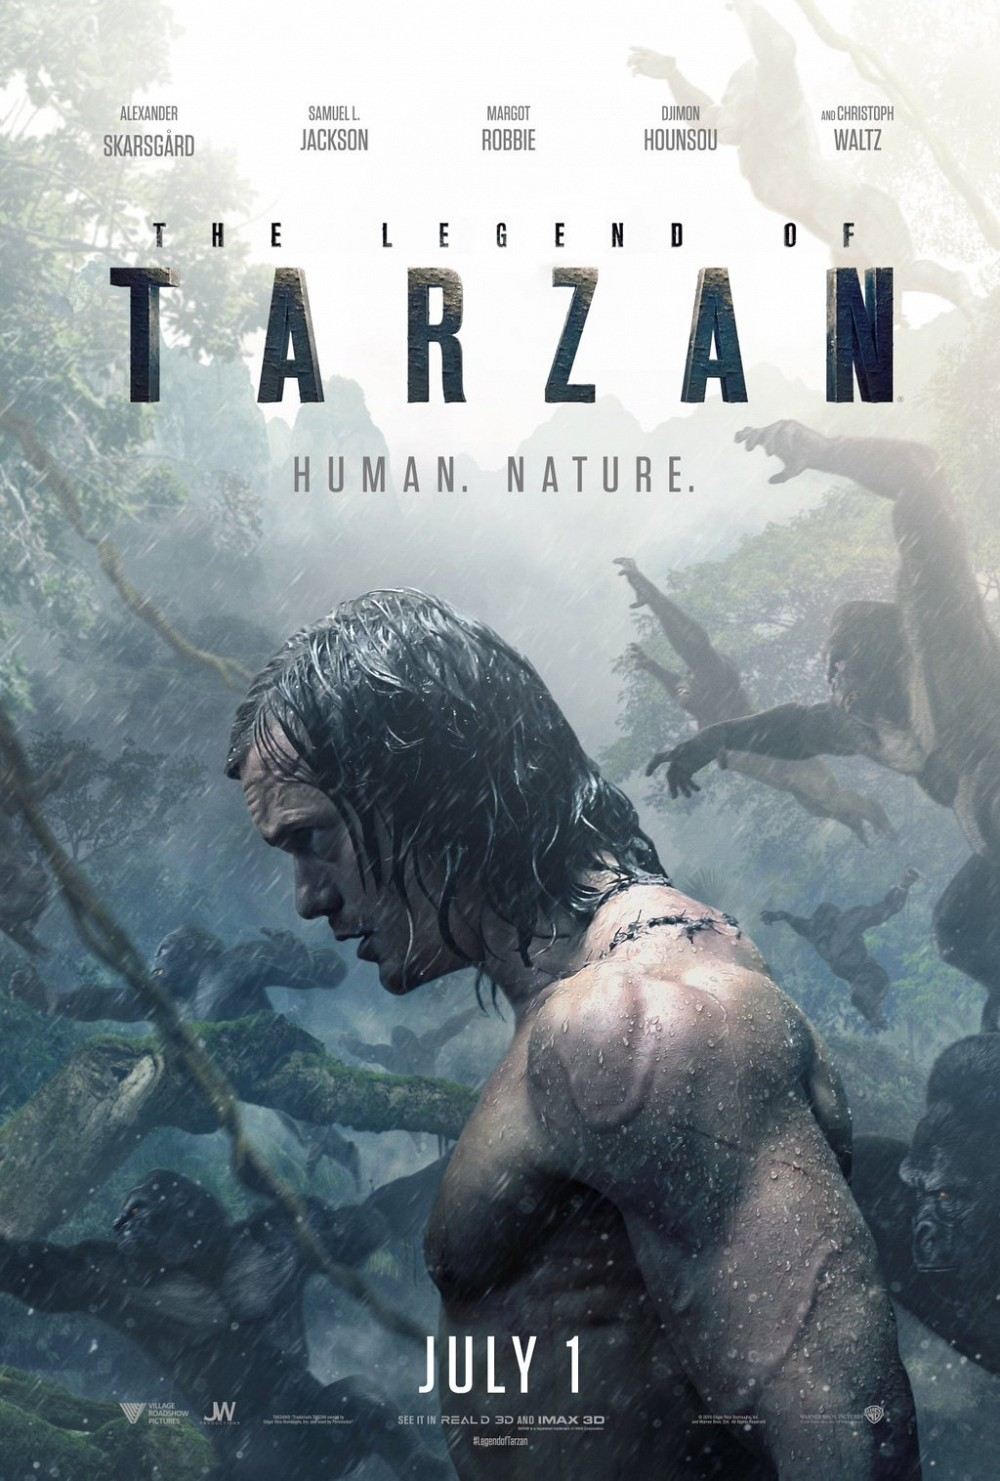 New movies in theaters - The Legend of Tarzan and more